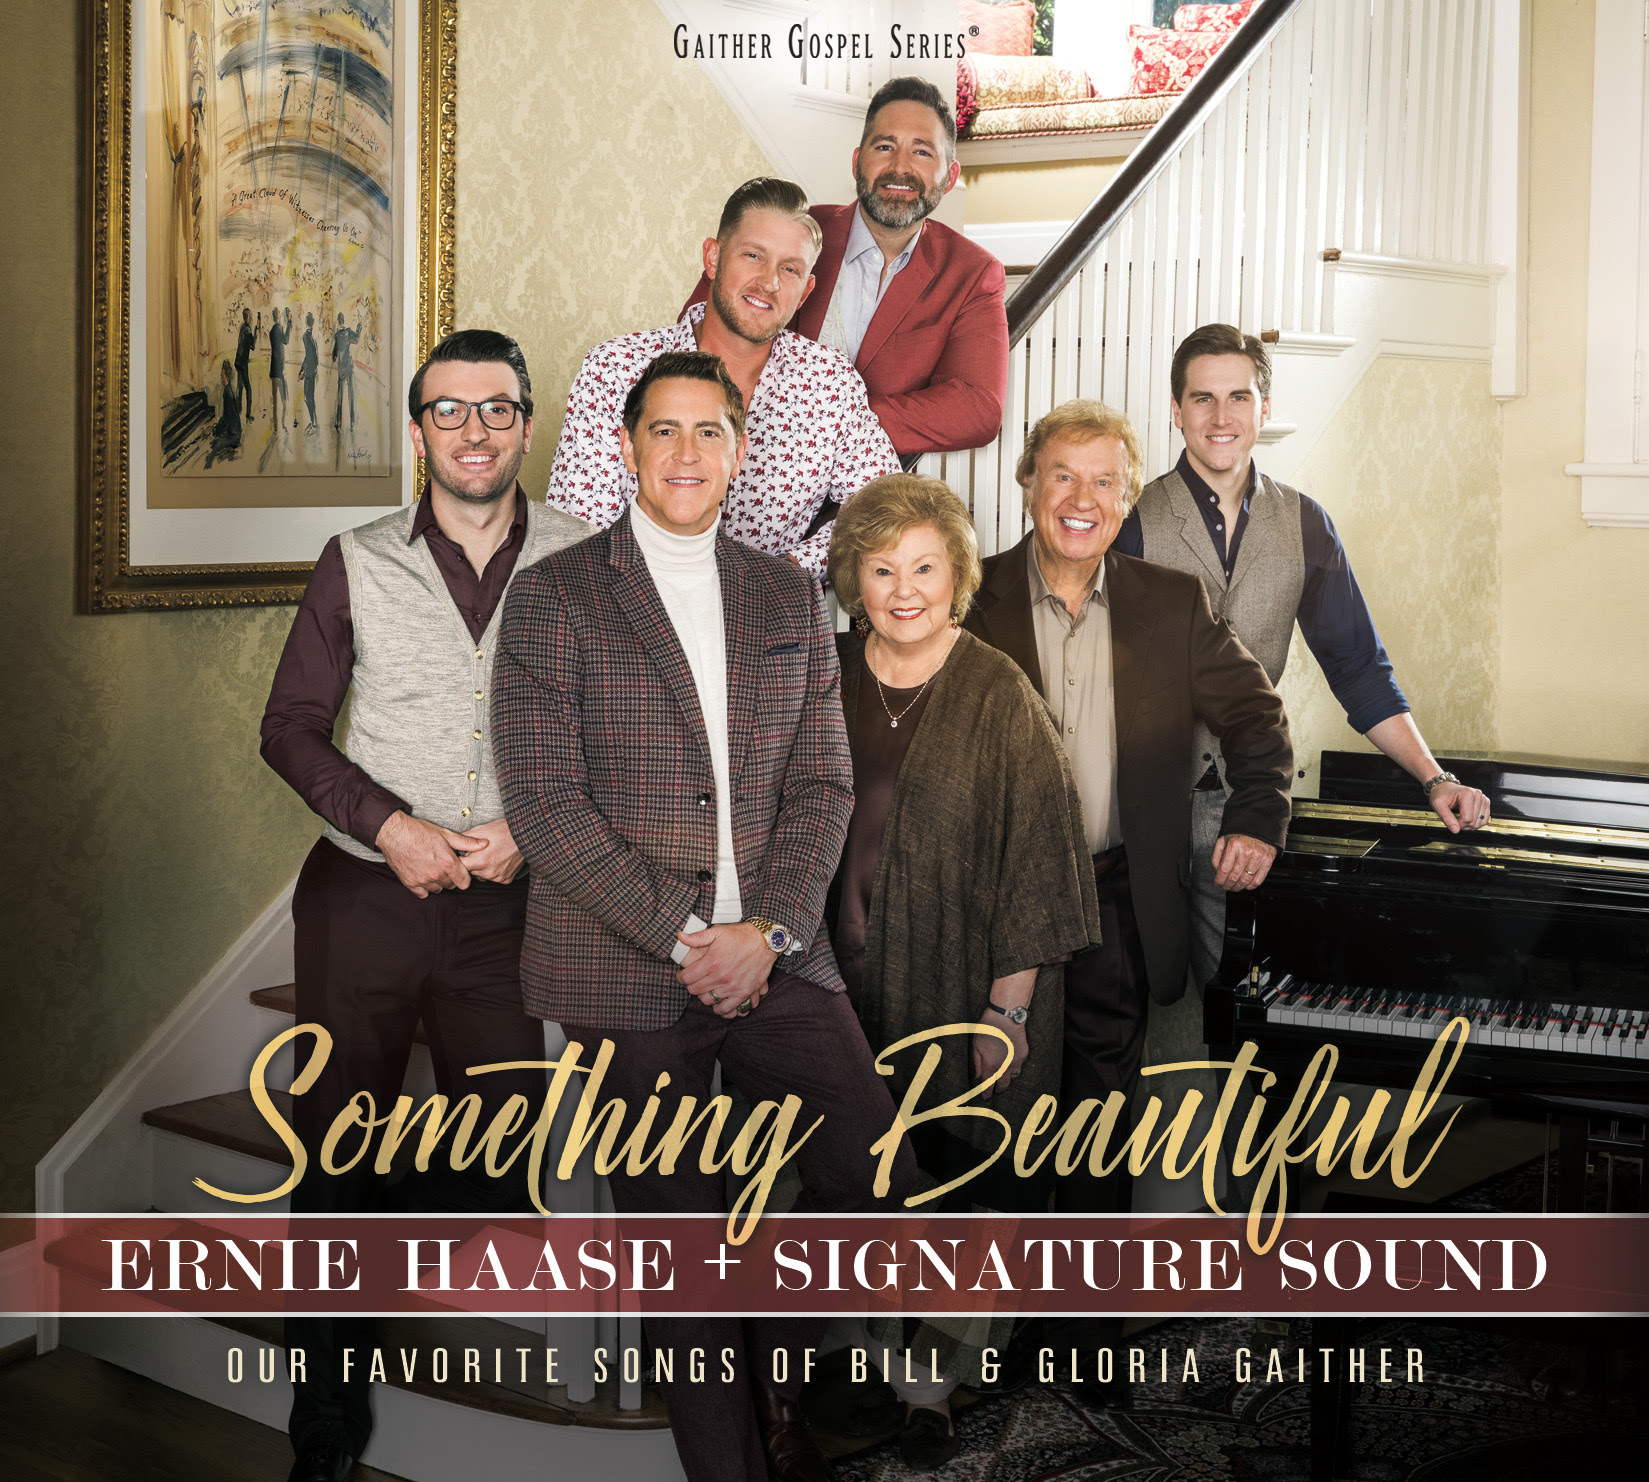 EHSS Announces new album Something Beautiful Available April 17